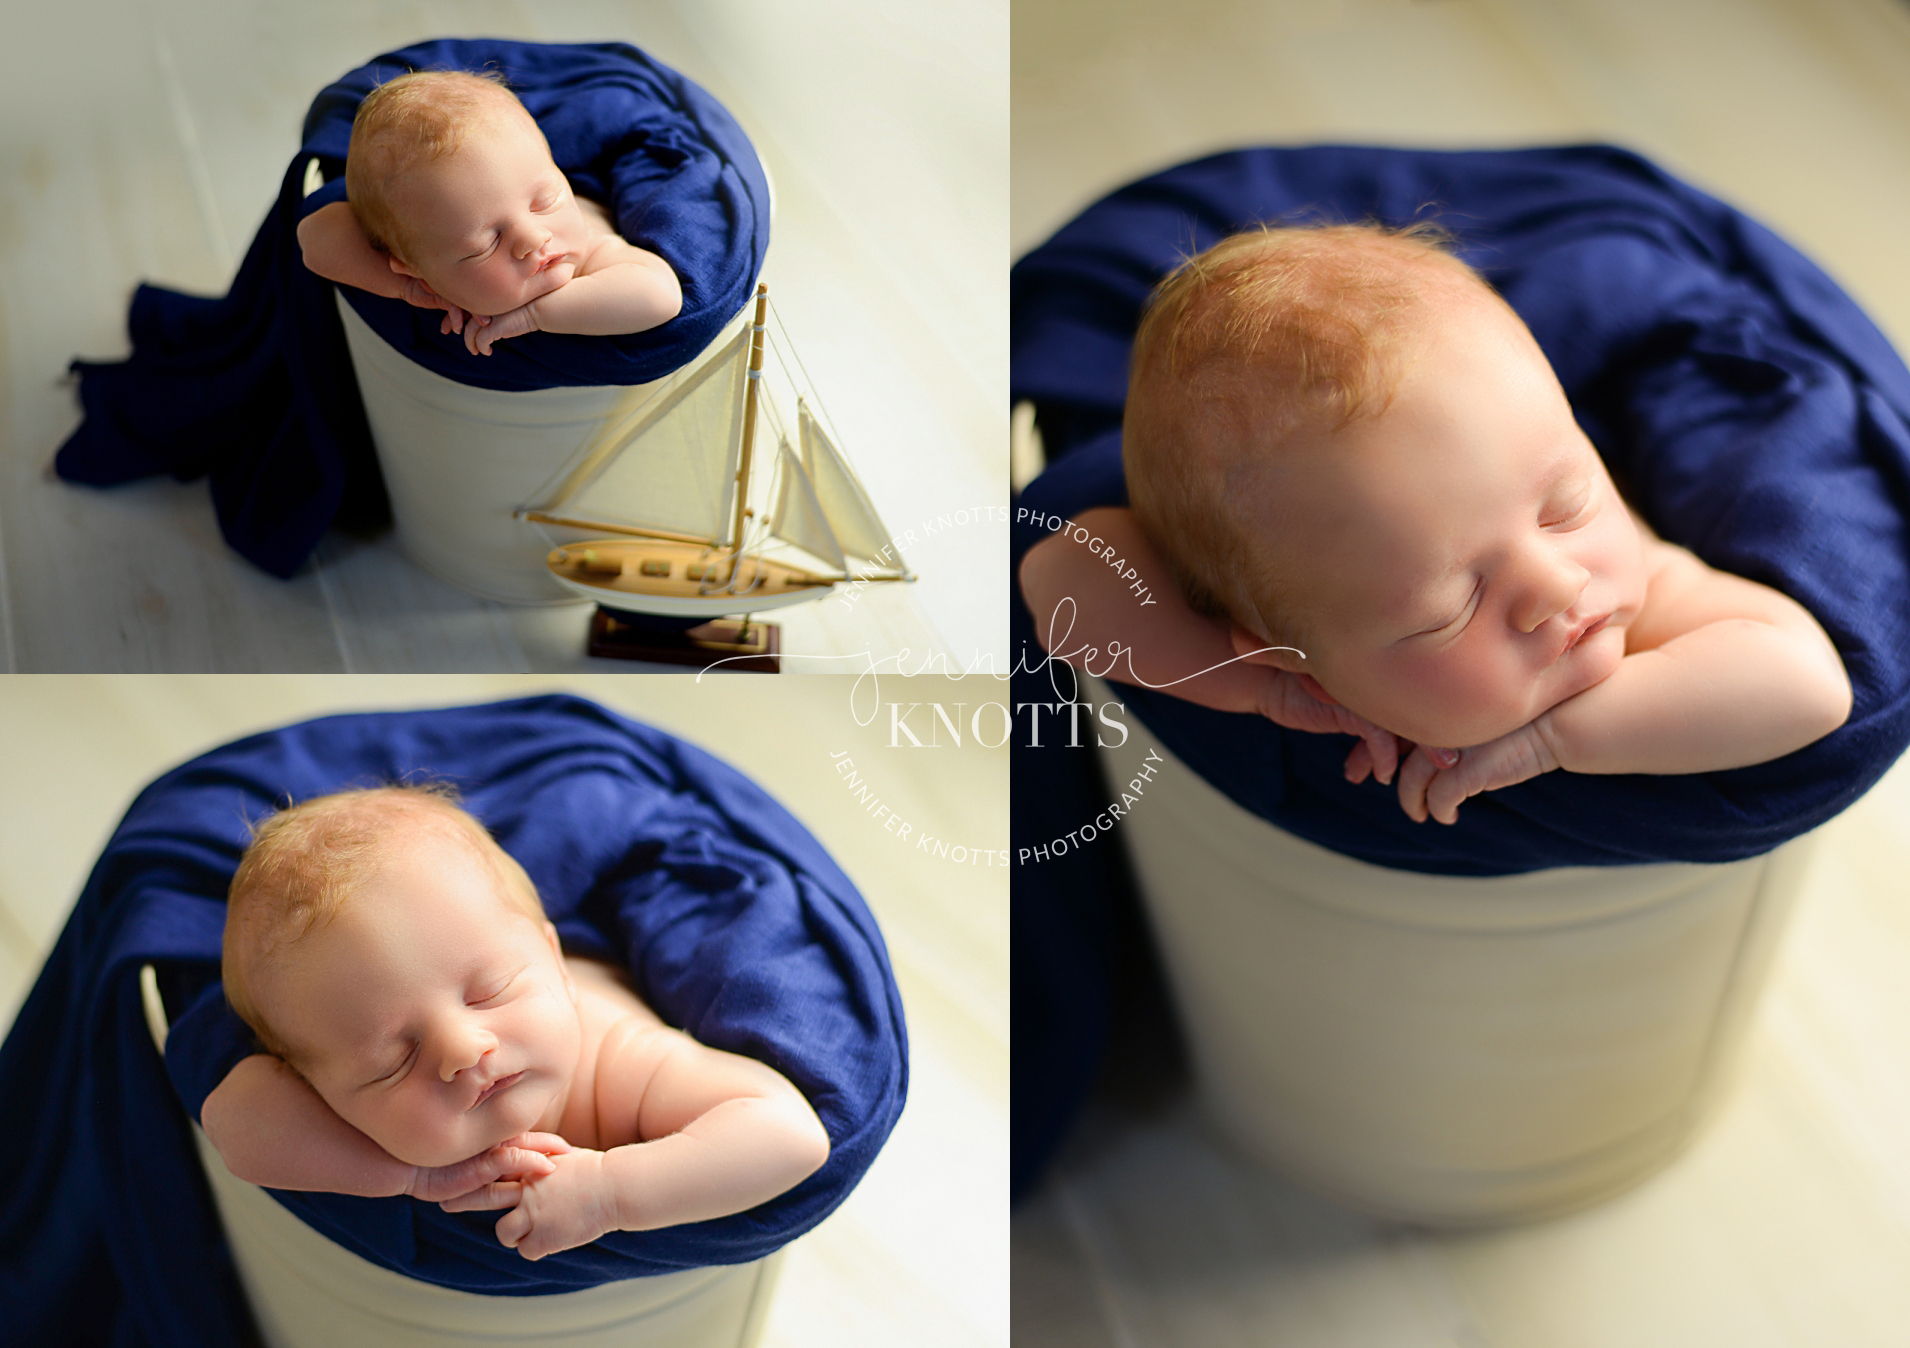 Wilmington newborn photographer captures newborn sleeping in bucket